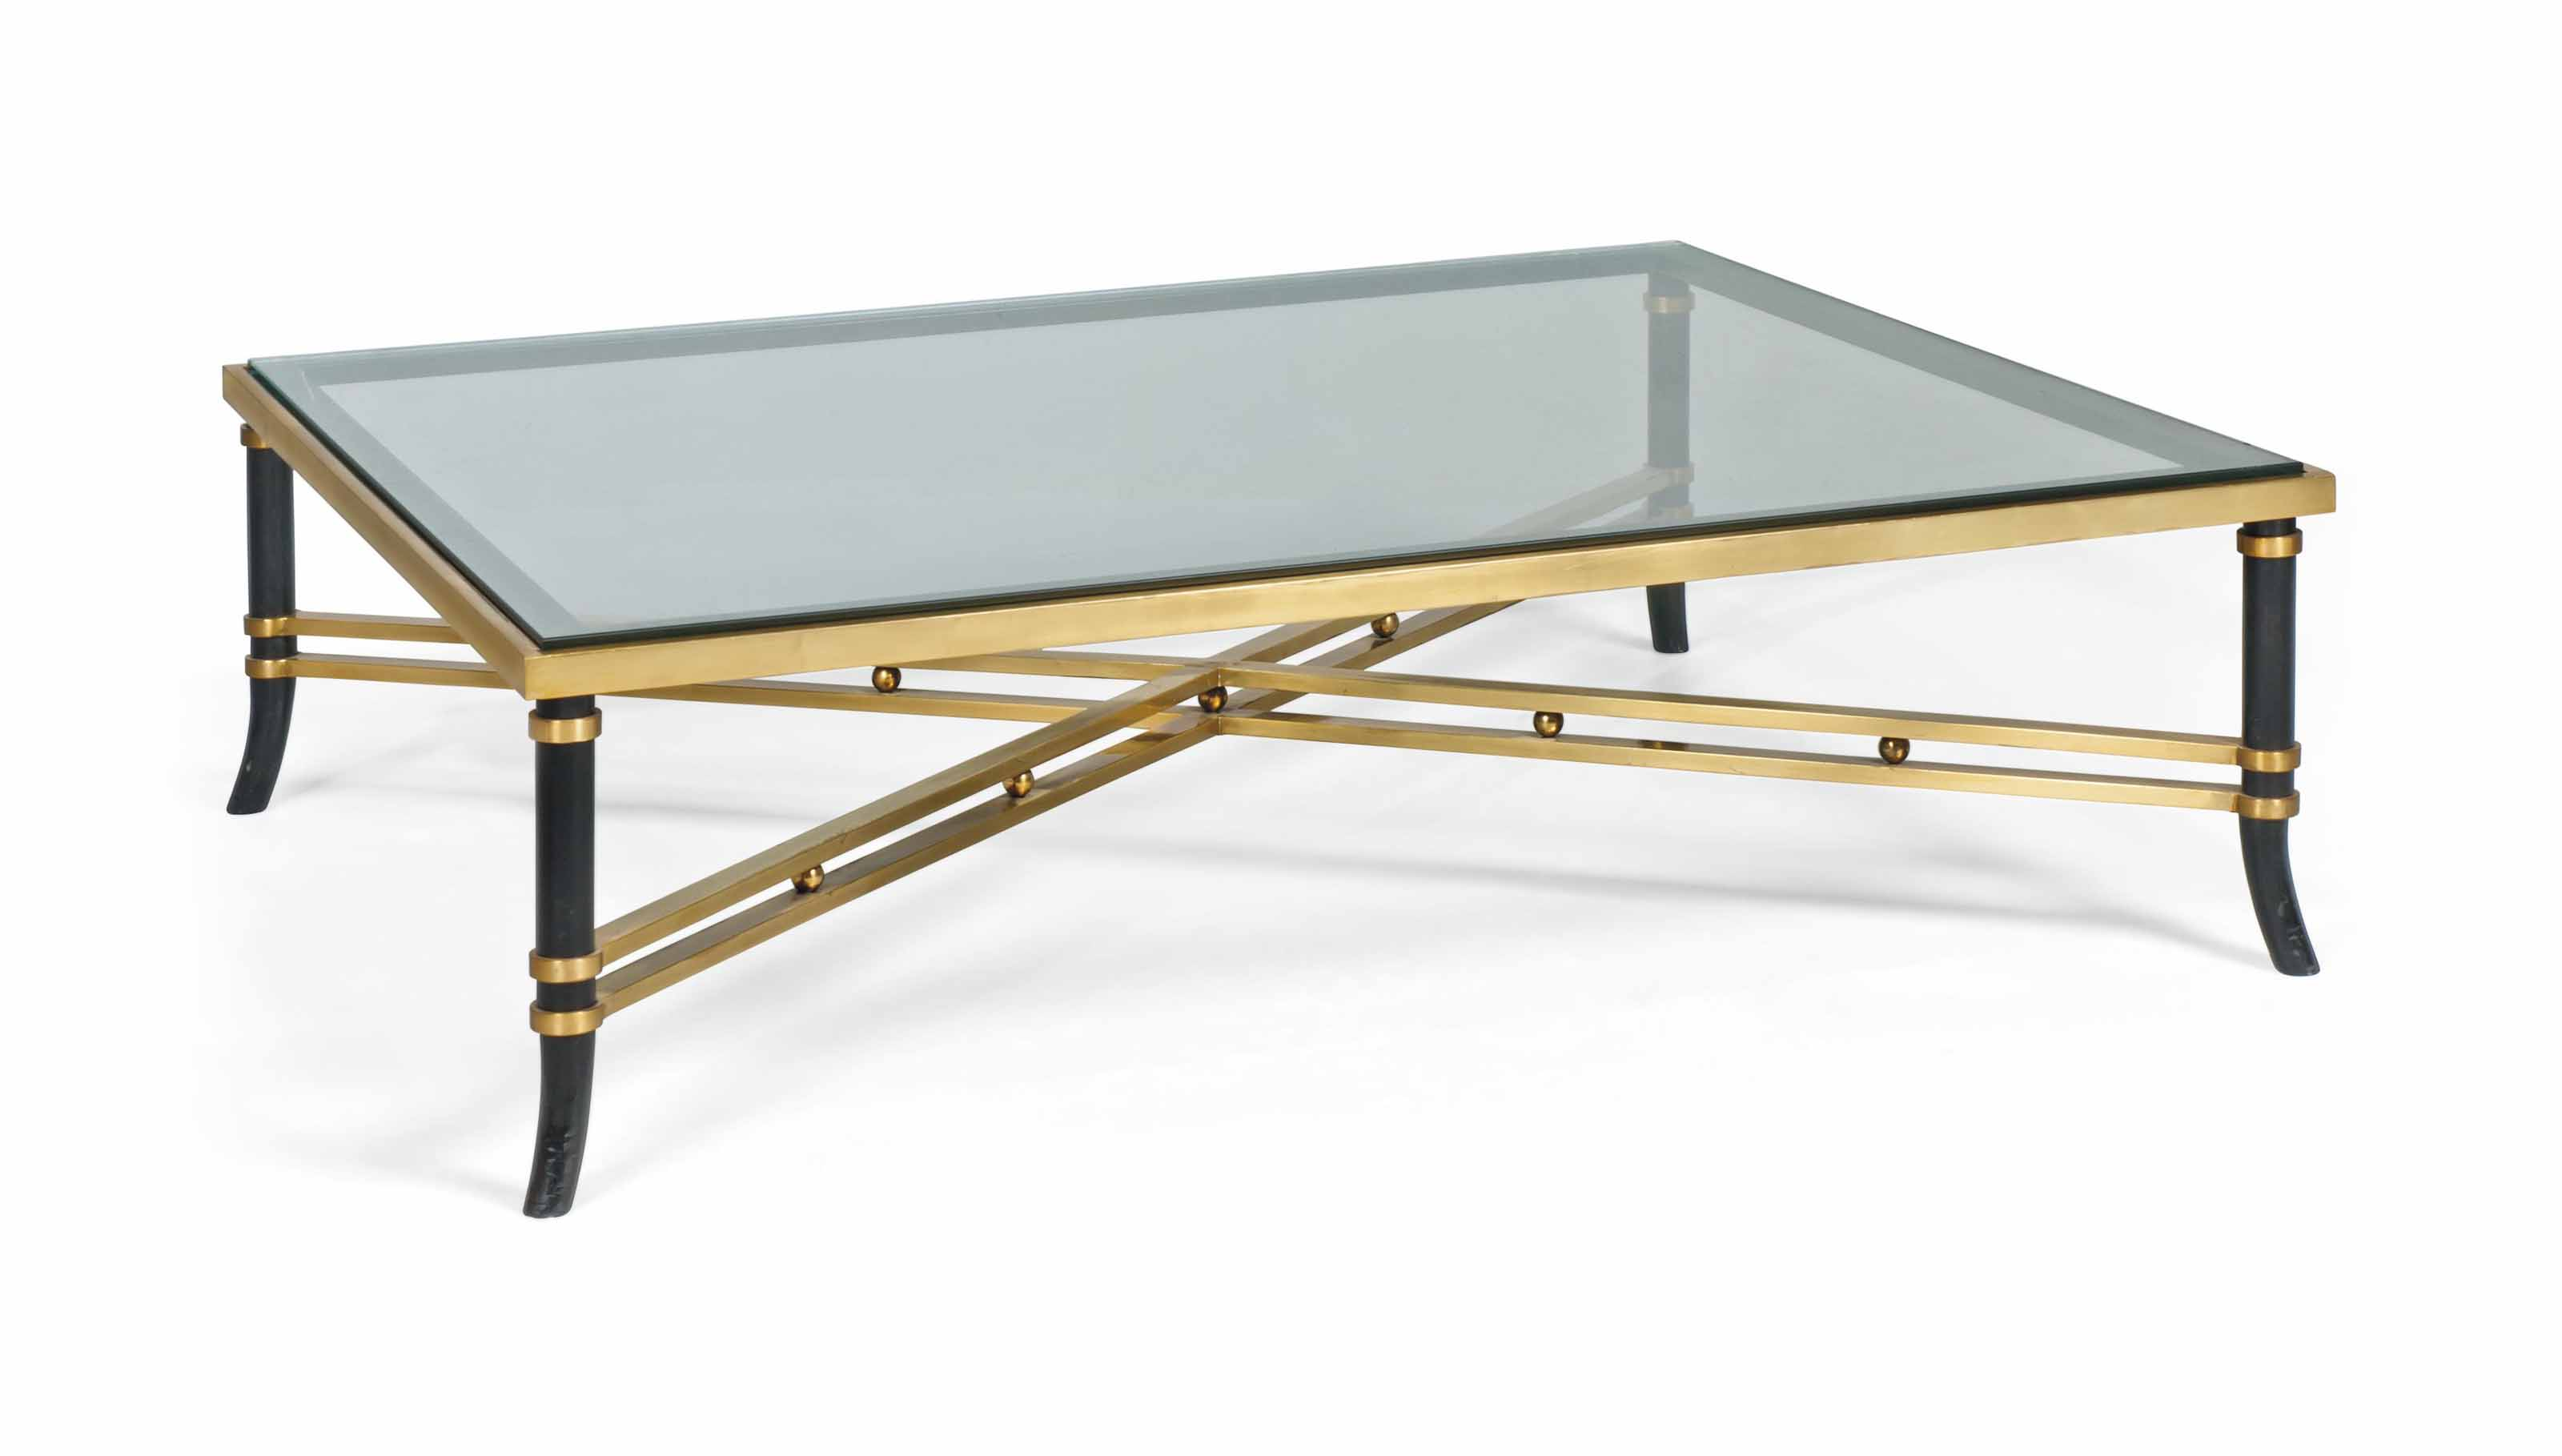 A FRENCH BRASS AND EBONISED METAL LOW TABLE